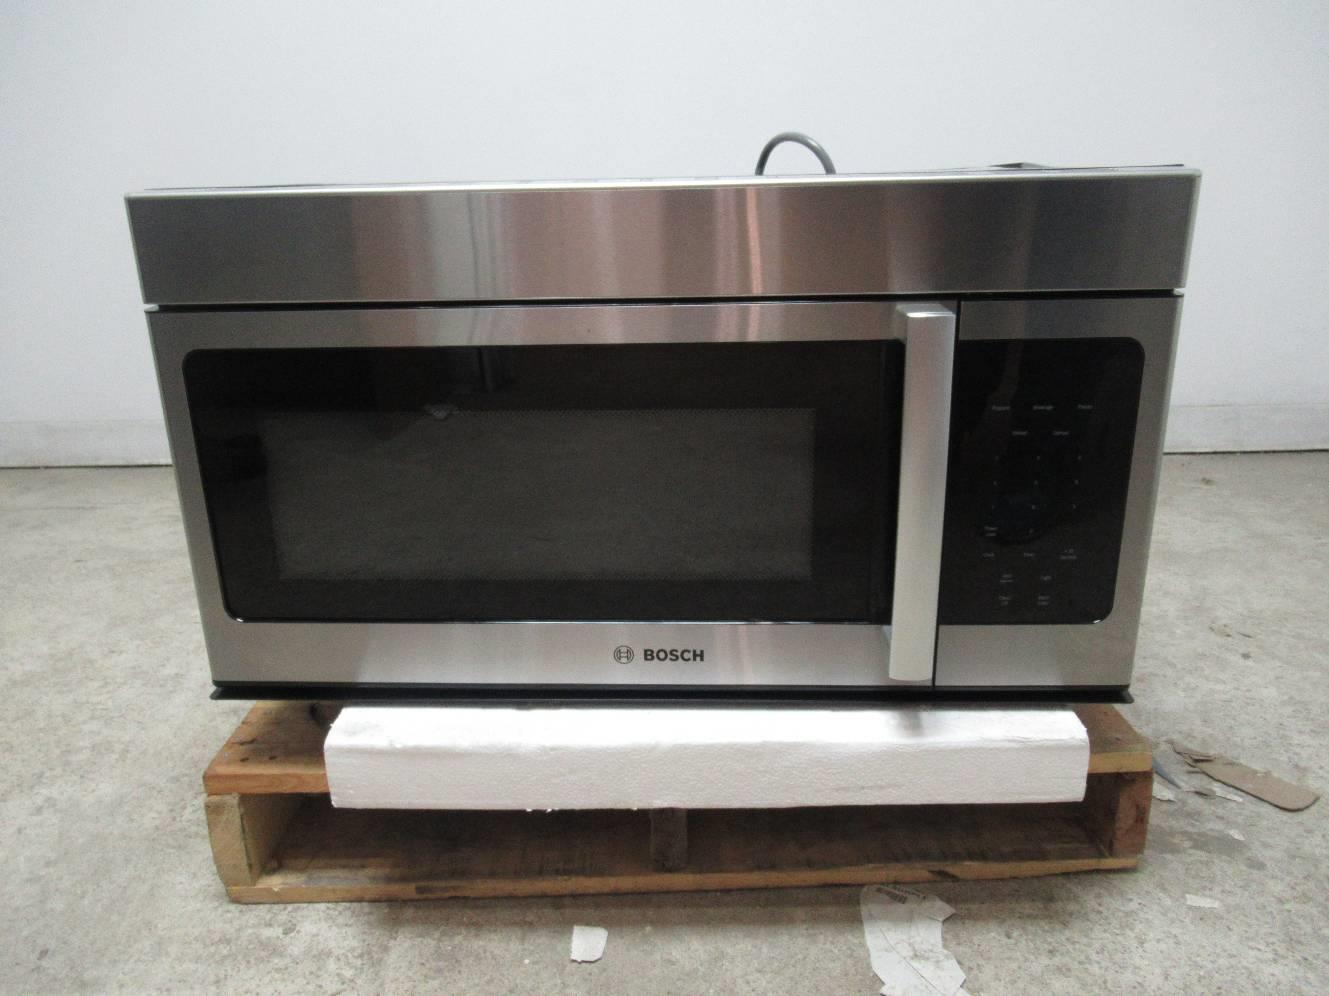 Bosch 300 Hmv3053u 30 Cfm Ventilation Over The Range Microwave Oven Details